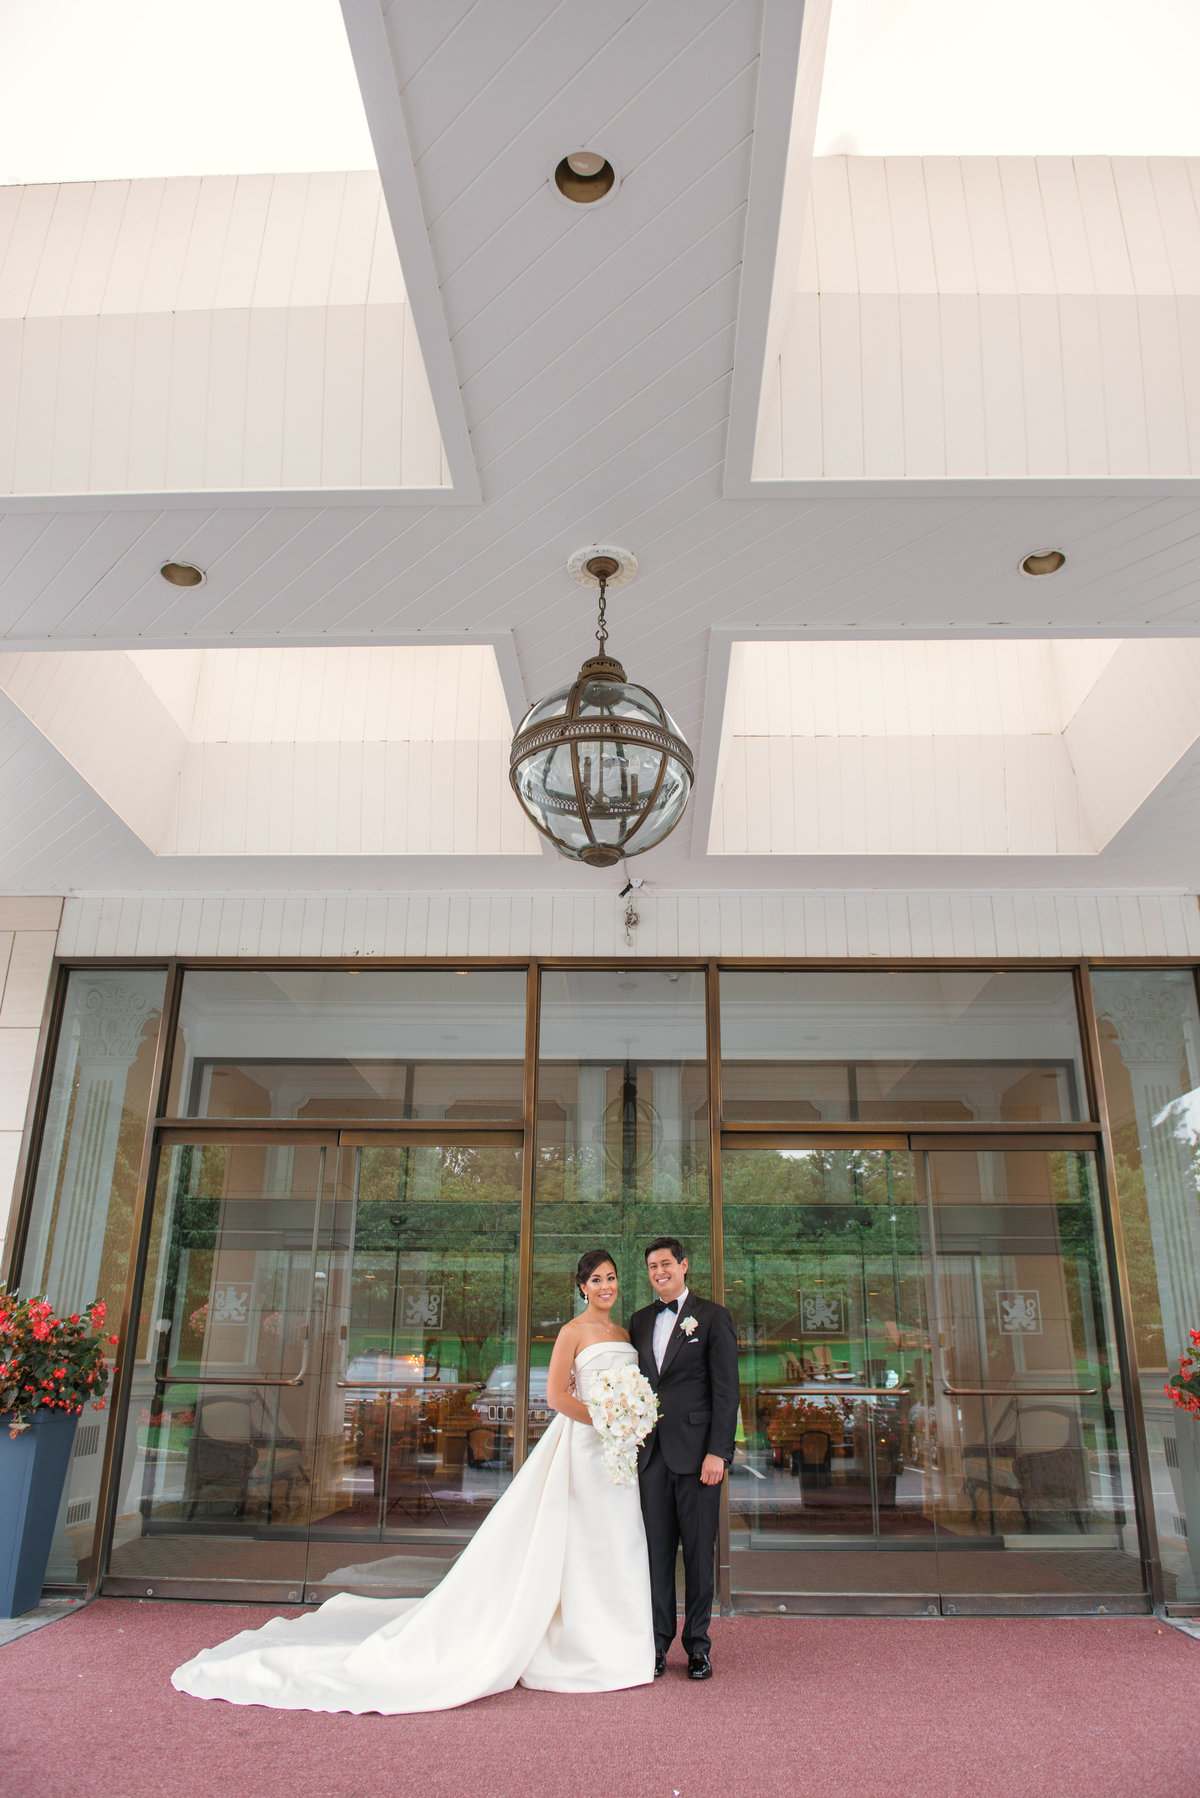 wedding photo of bride and groom standing at the front entrance of The Garden City Hotel